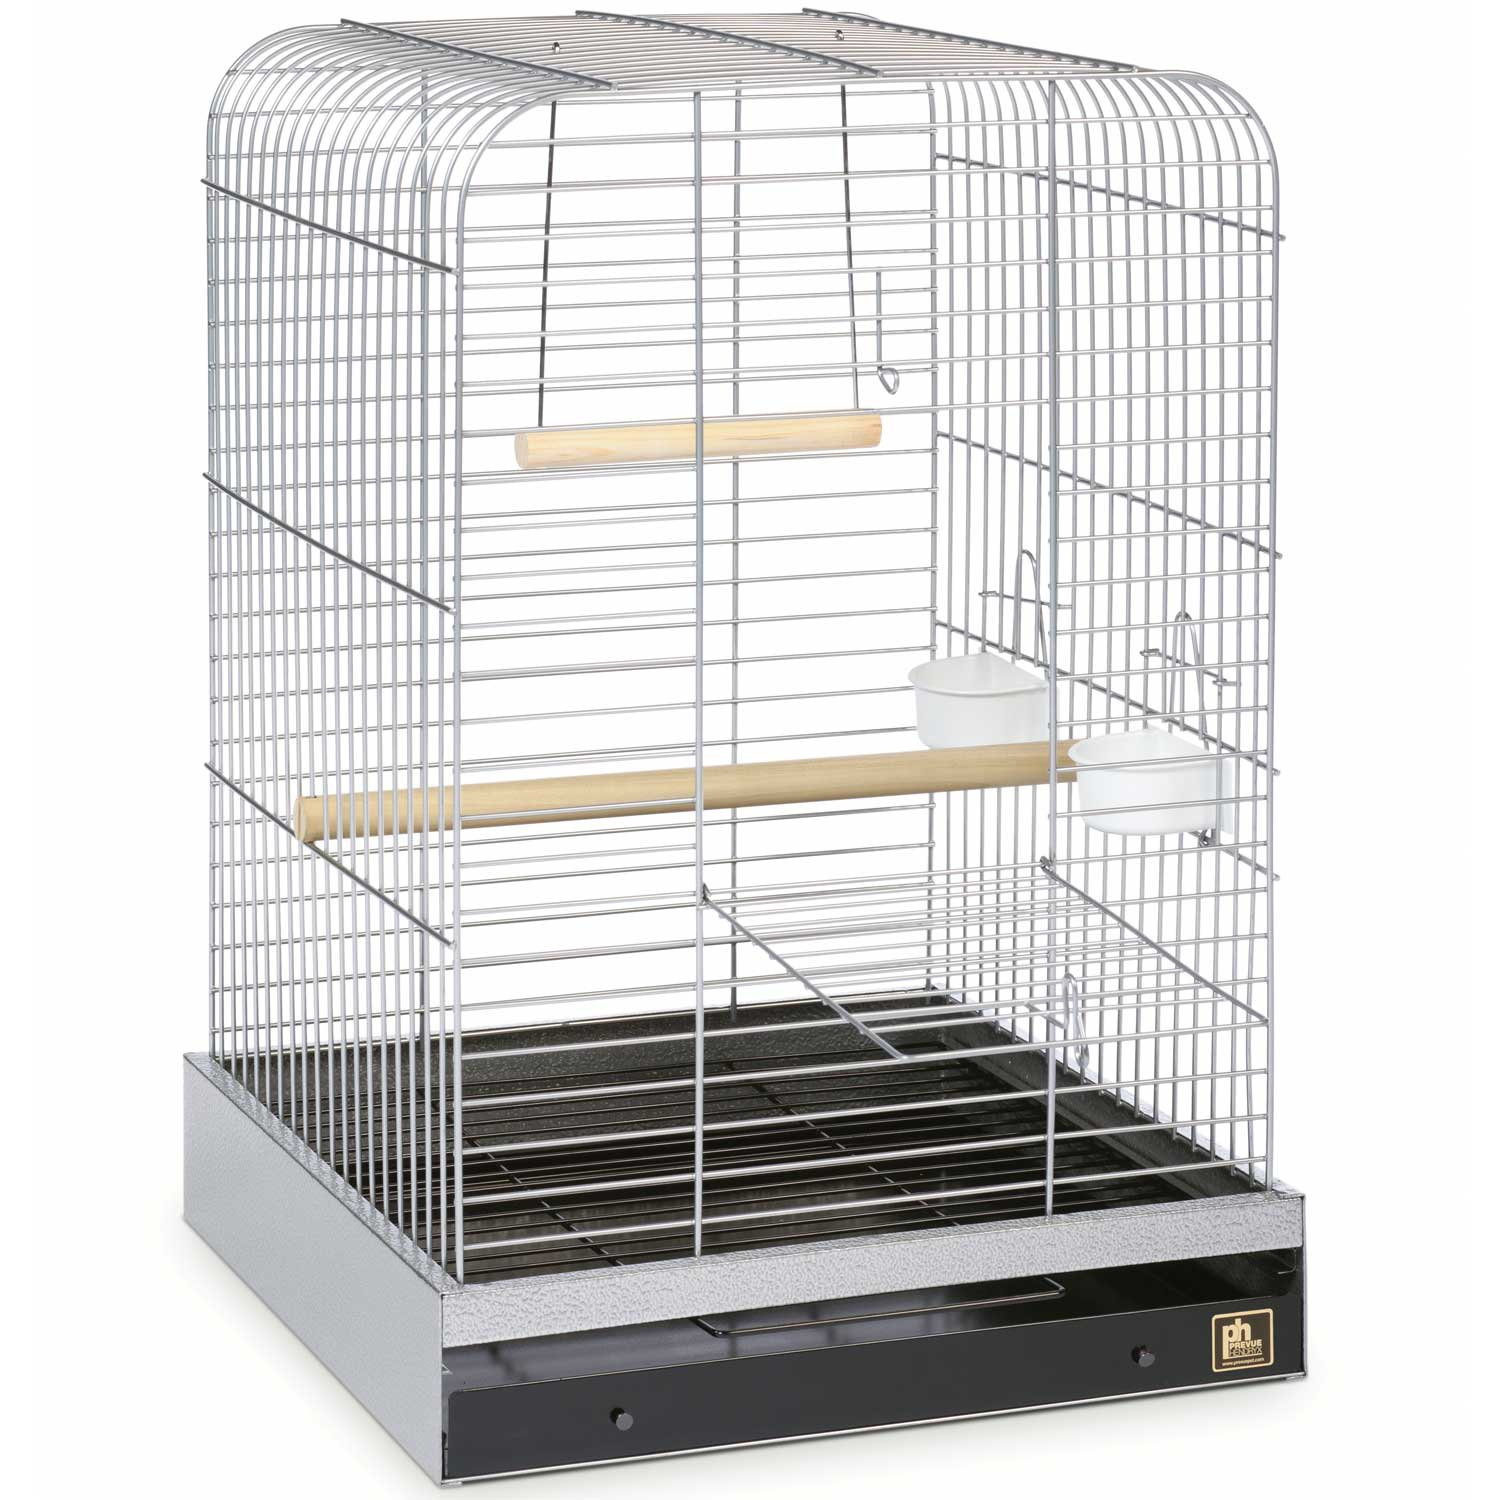 Prevue Hendryx Parrot Cage in Chrome